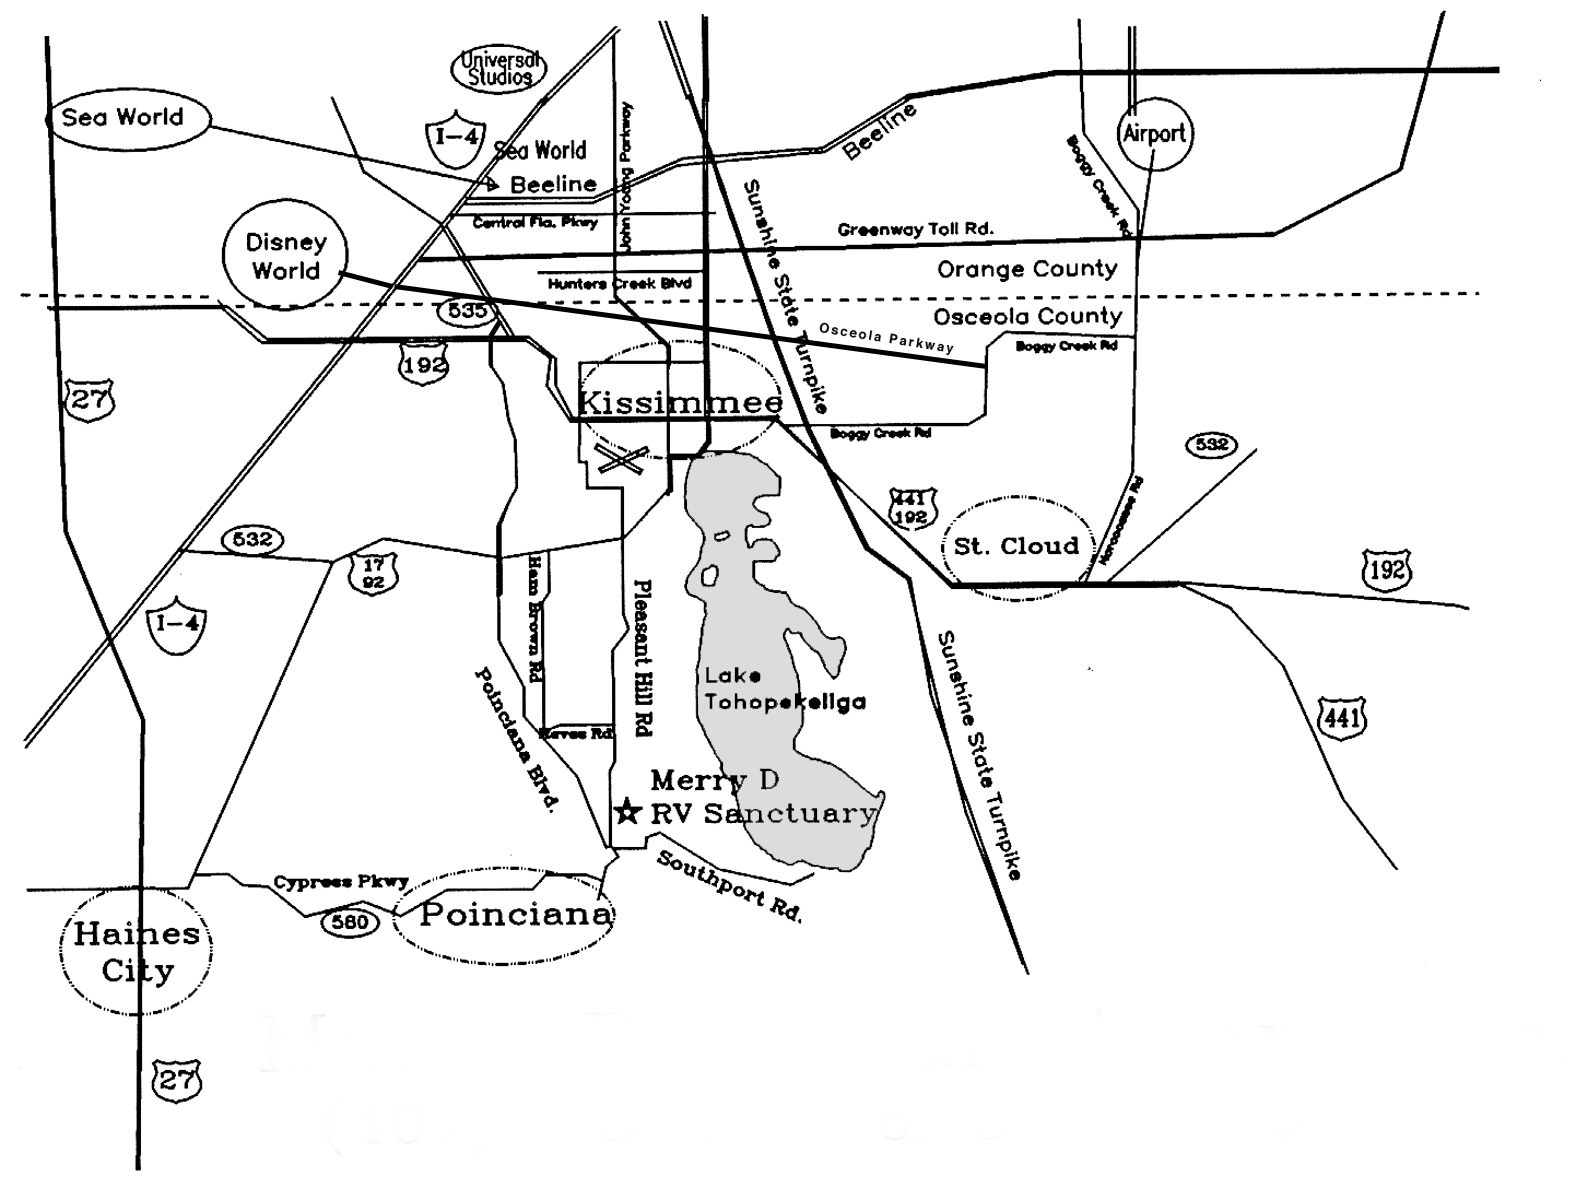 Maps of the Merry D RV Sanctuary in Kissimmee, FL.  Mins Wiring Diagram on